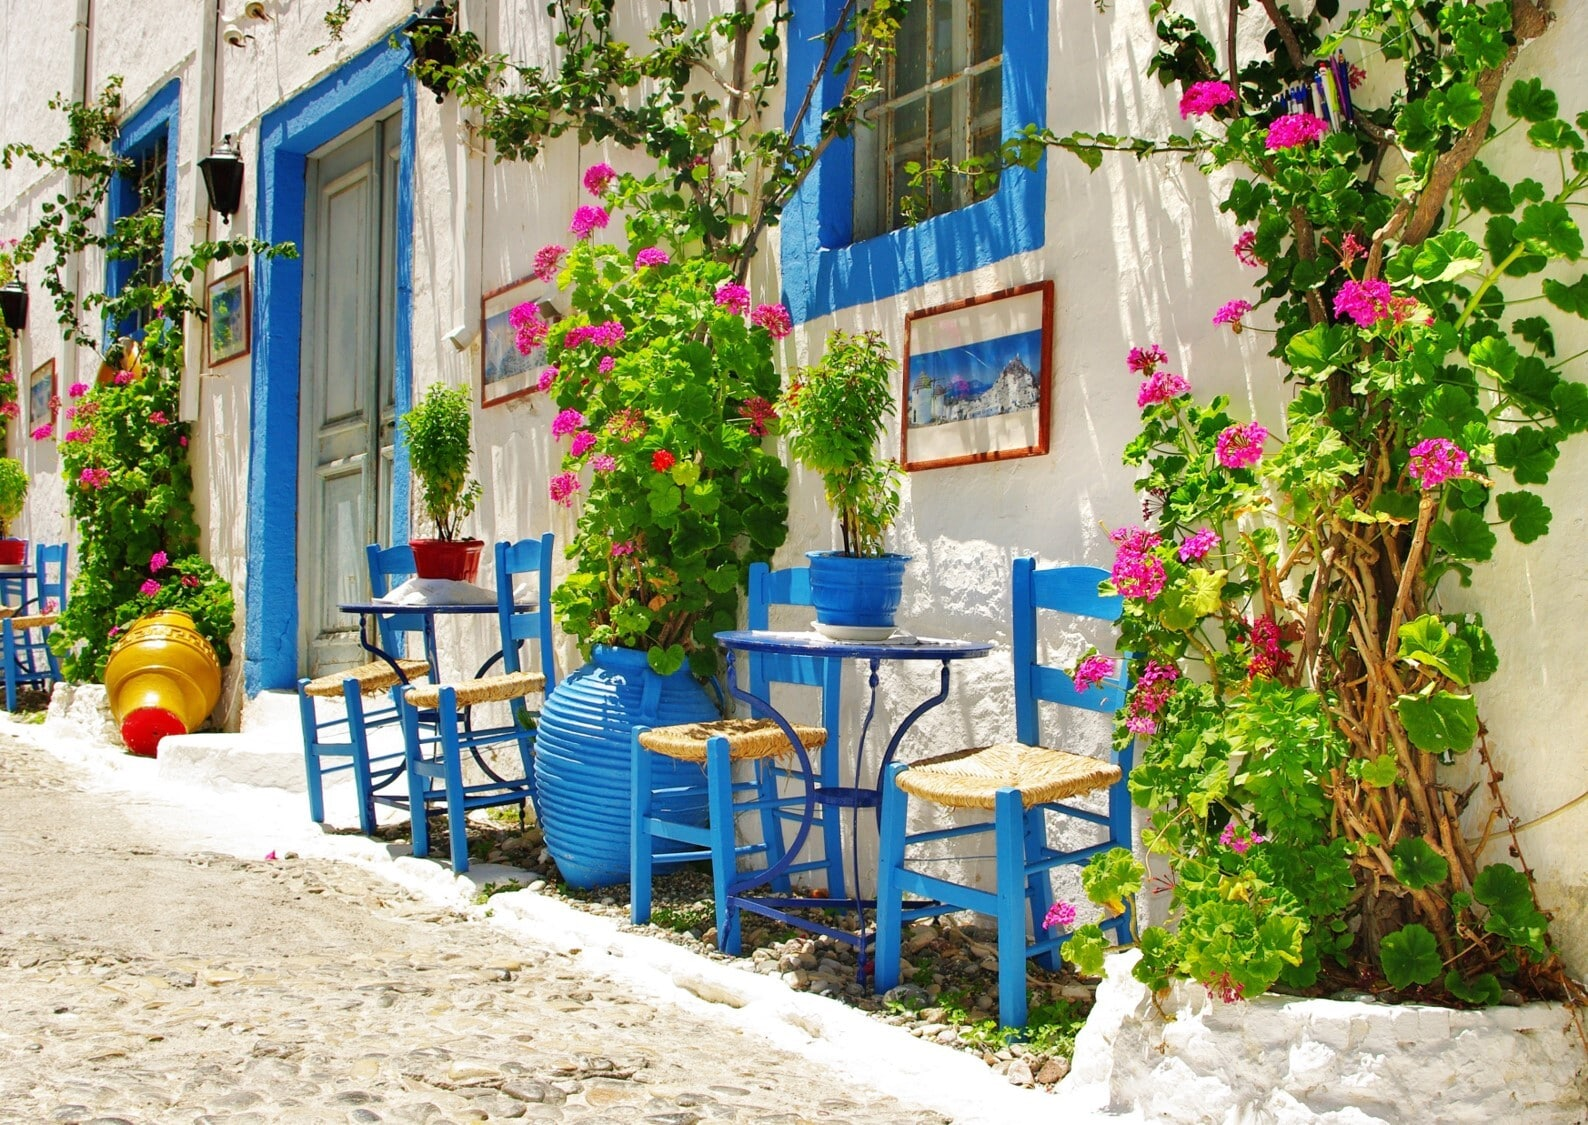 House with blue chairs and flowers